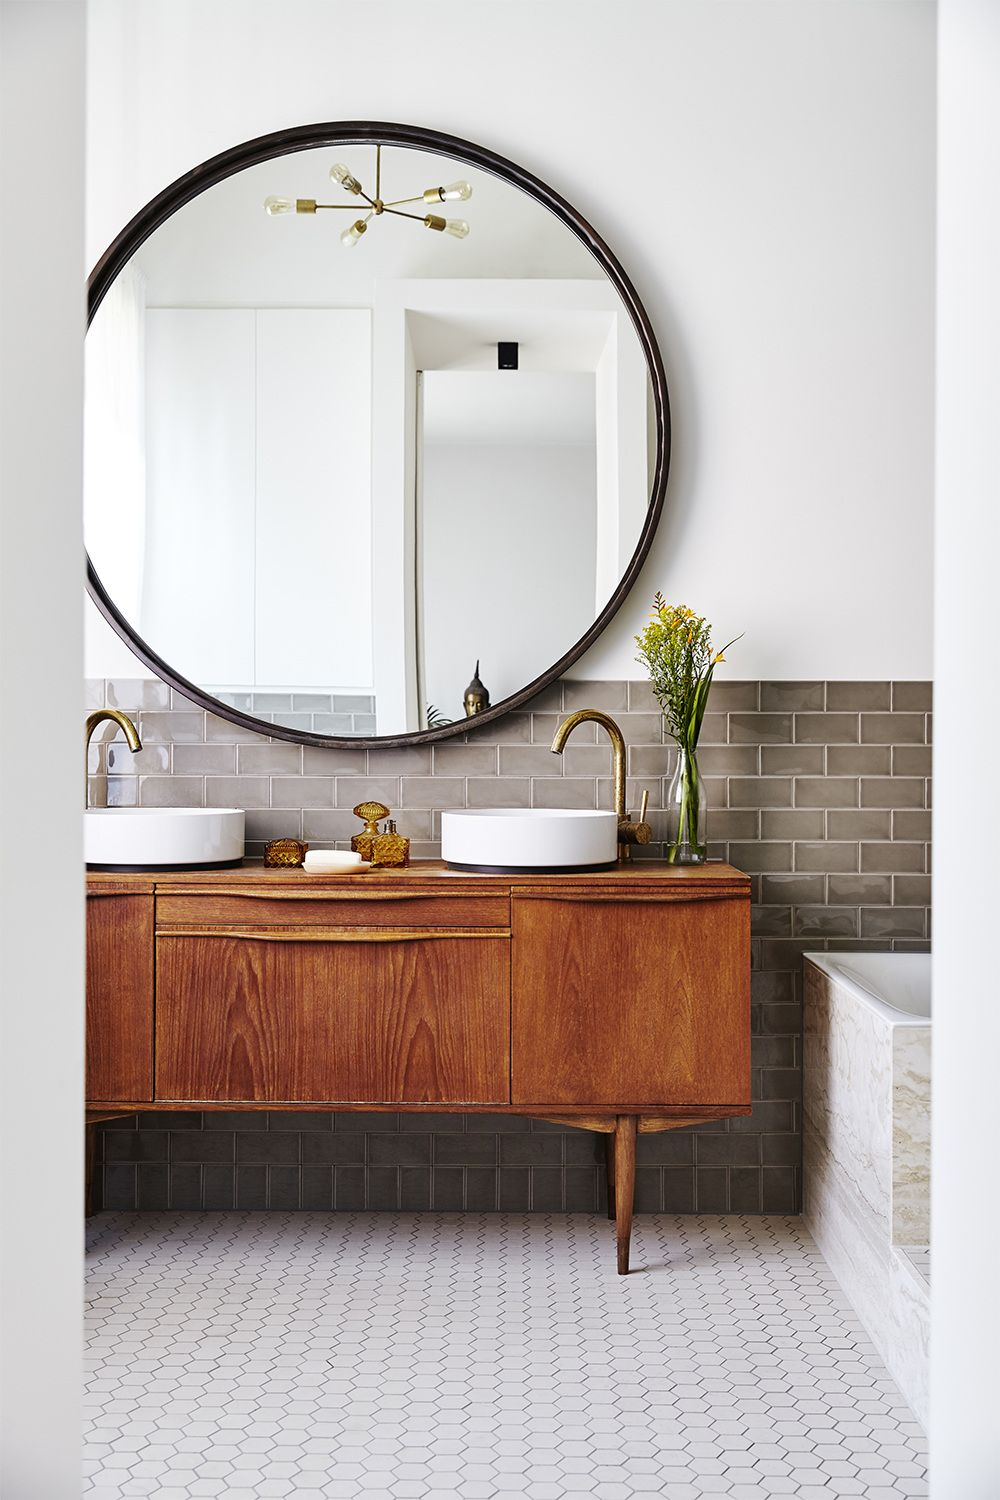 Luxurious bathroom ideas that will never get out of style how to